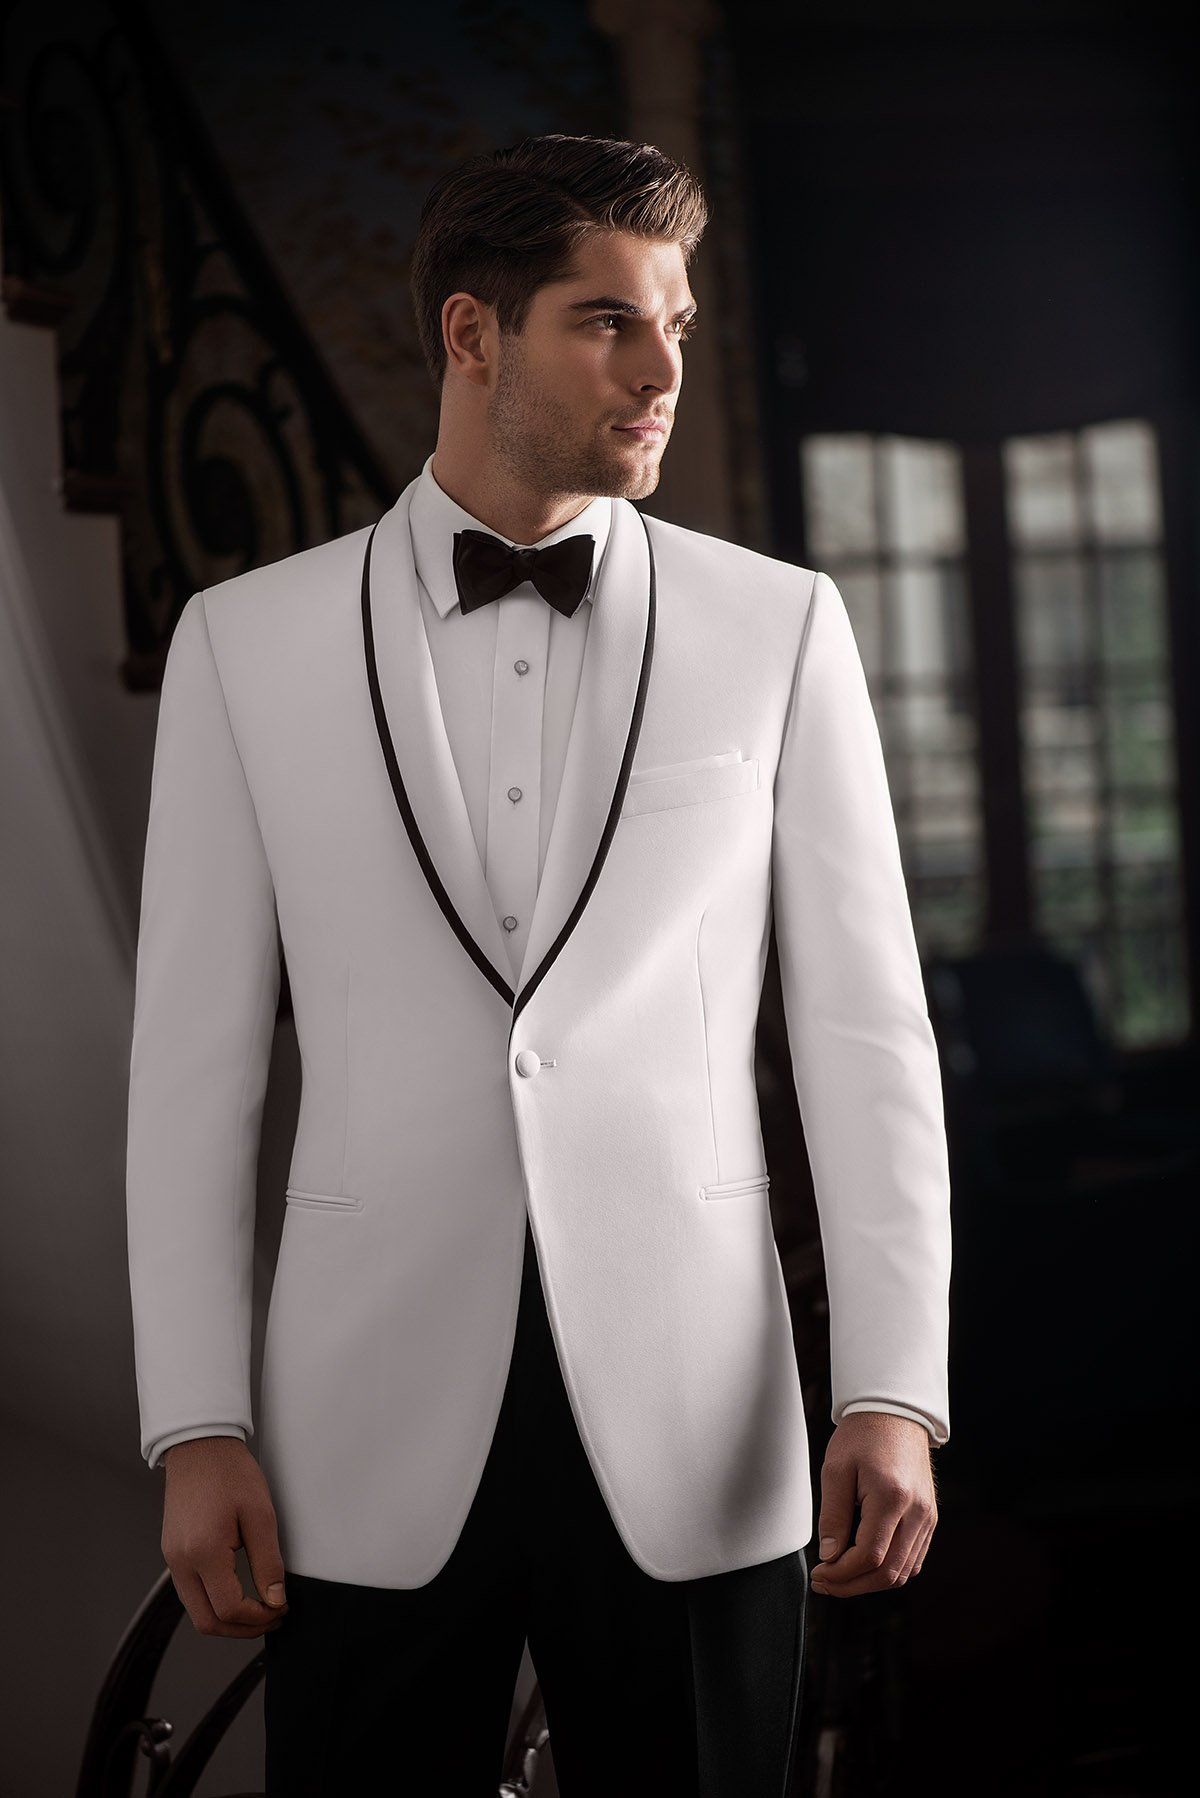 7a5c996f092f8c Tommy's Tuxedos® Tuxedo Rental Prices